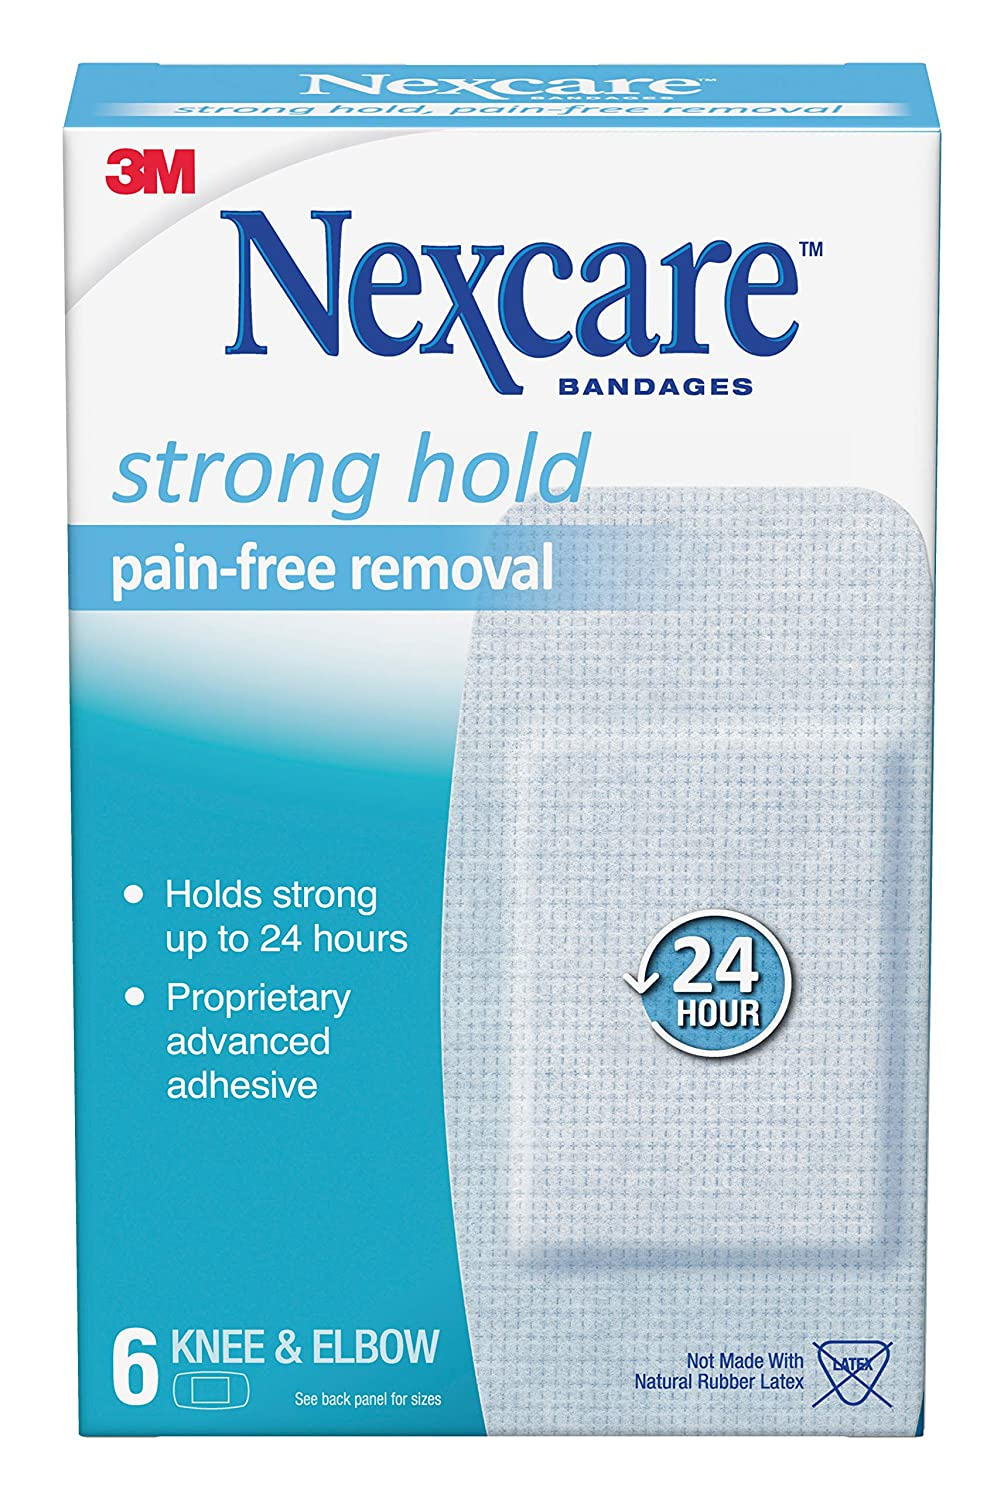 Nexcare Sensitive Skin Bandages for Knee and Elbow, Pain-Free Removal, Hypoallergenic, 6 Count